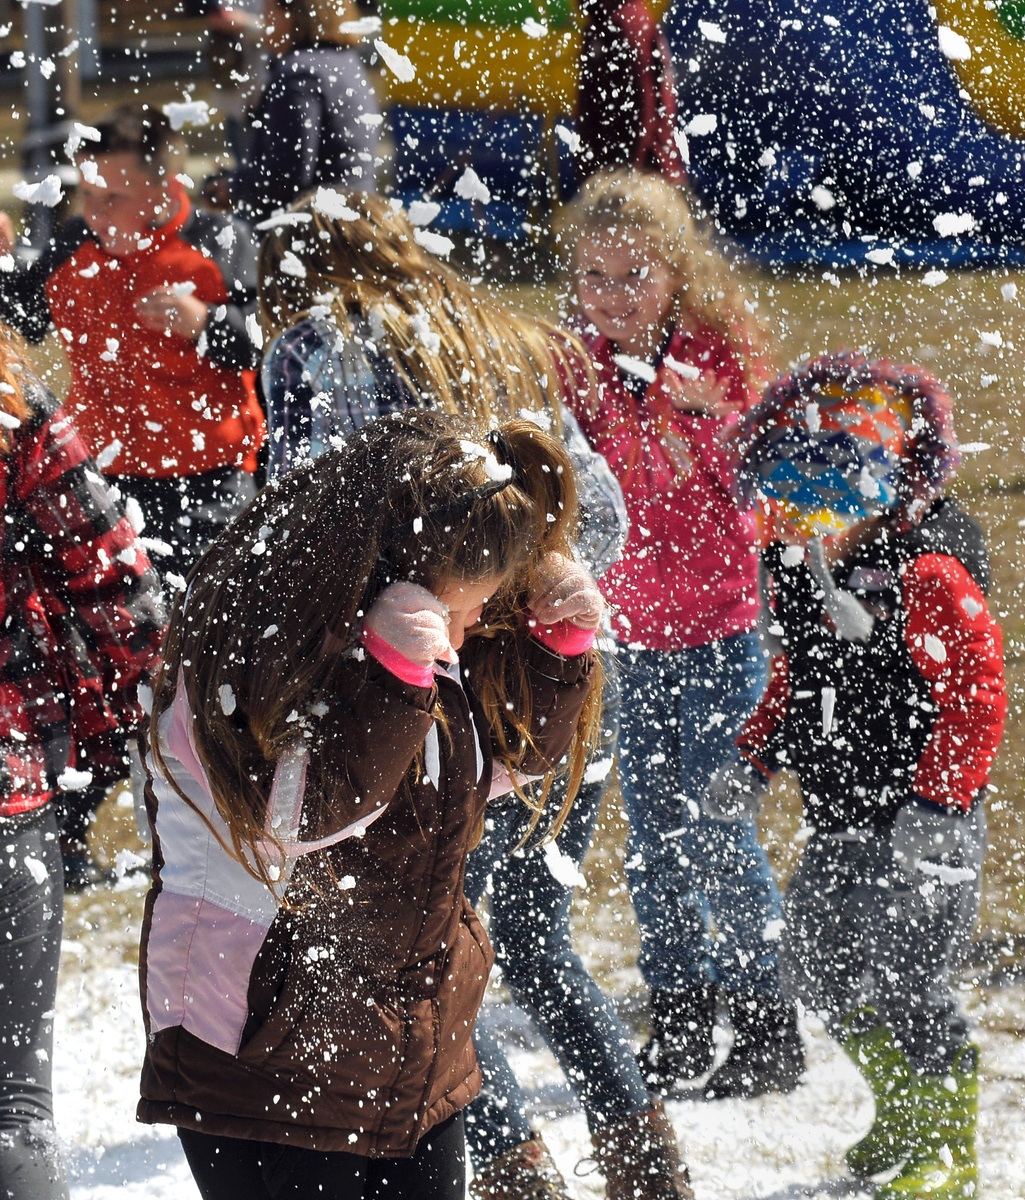 Children shield themselves from falling snow during Snow Day at Red Dam Baptist Church in Hardeeville.